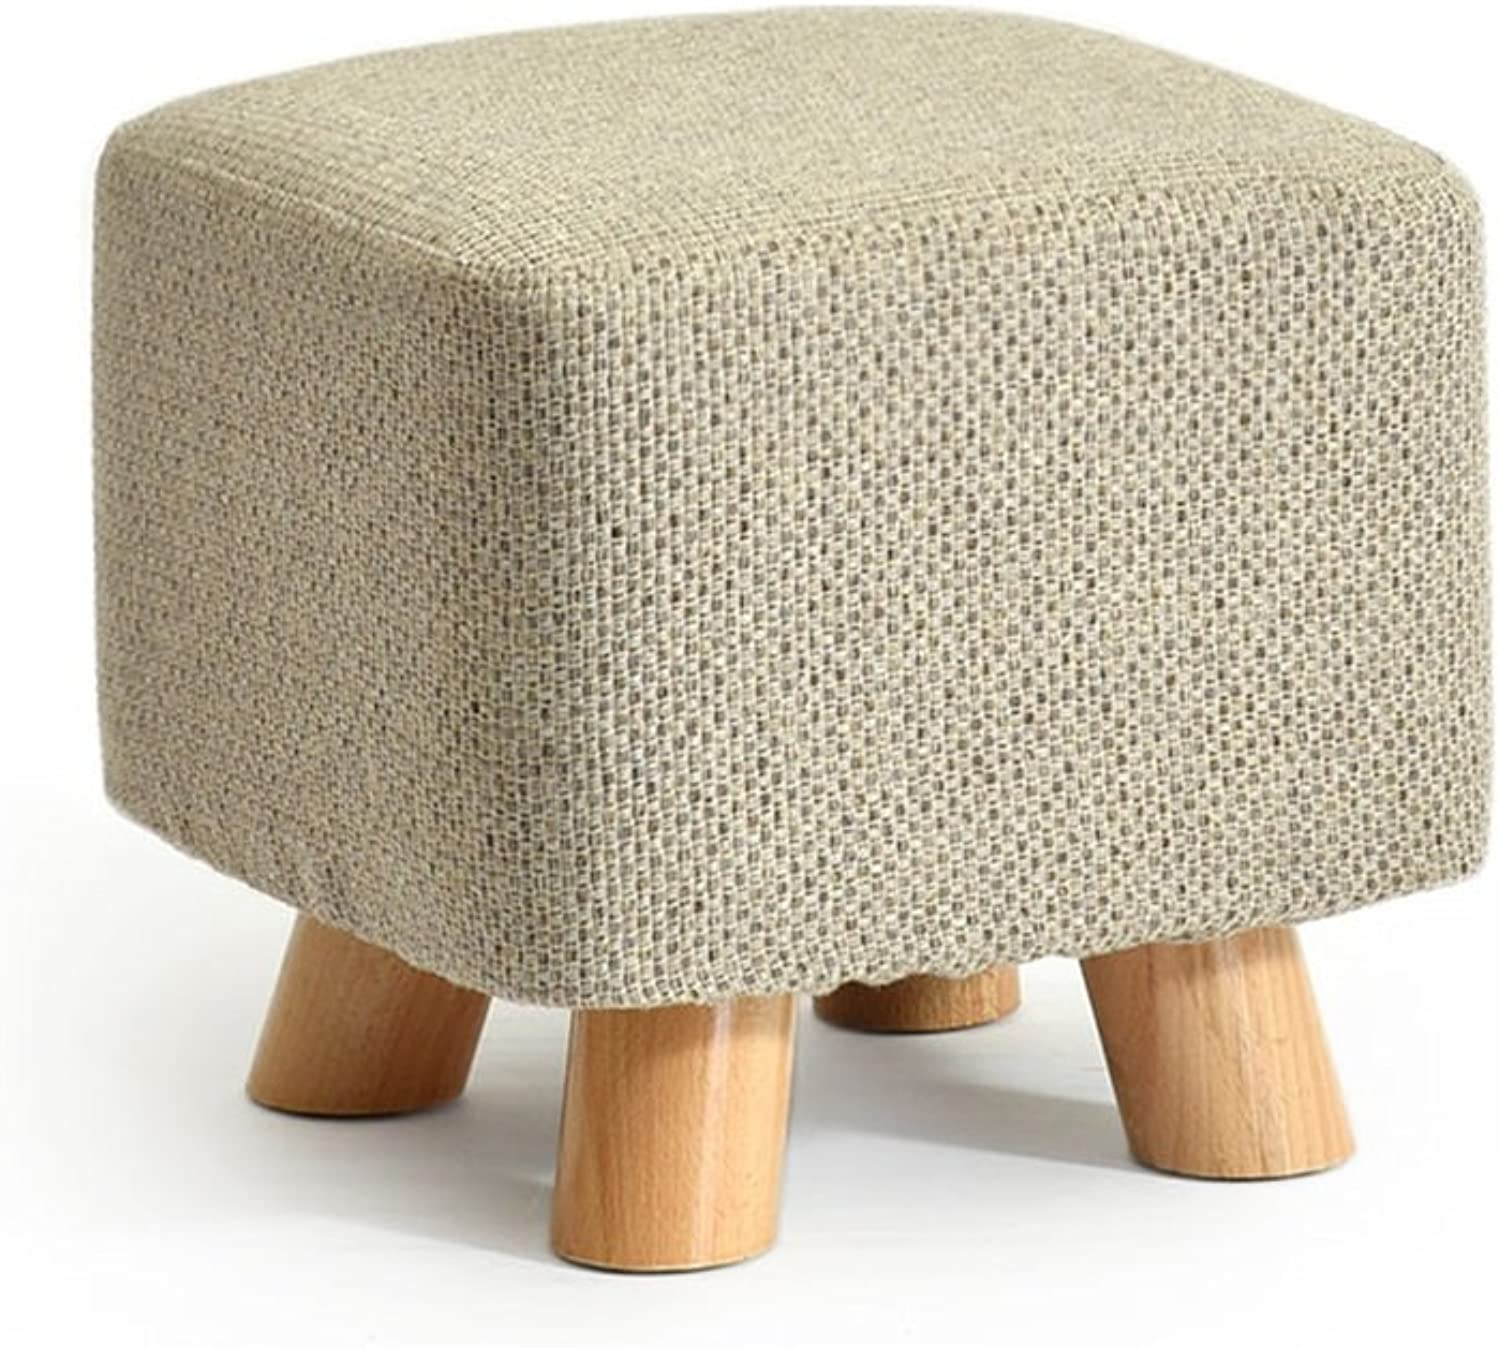 ZfgG Solid Wood shoes Stool Square Upholstered Footstool Sofa Low Stool Footrest Small Seat Foot Rest Chair Dark bluee (color   Beige)